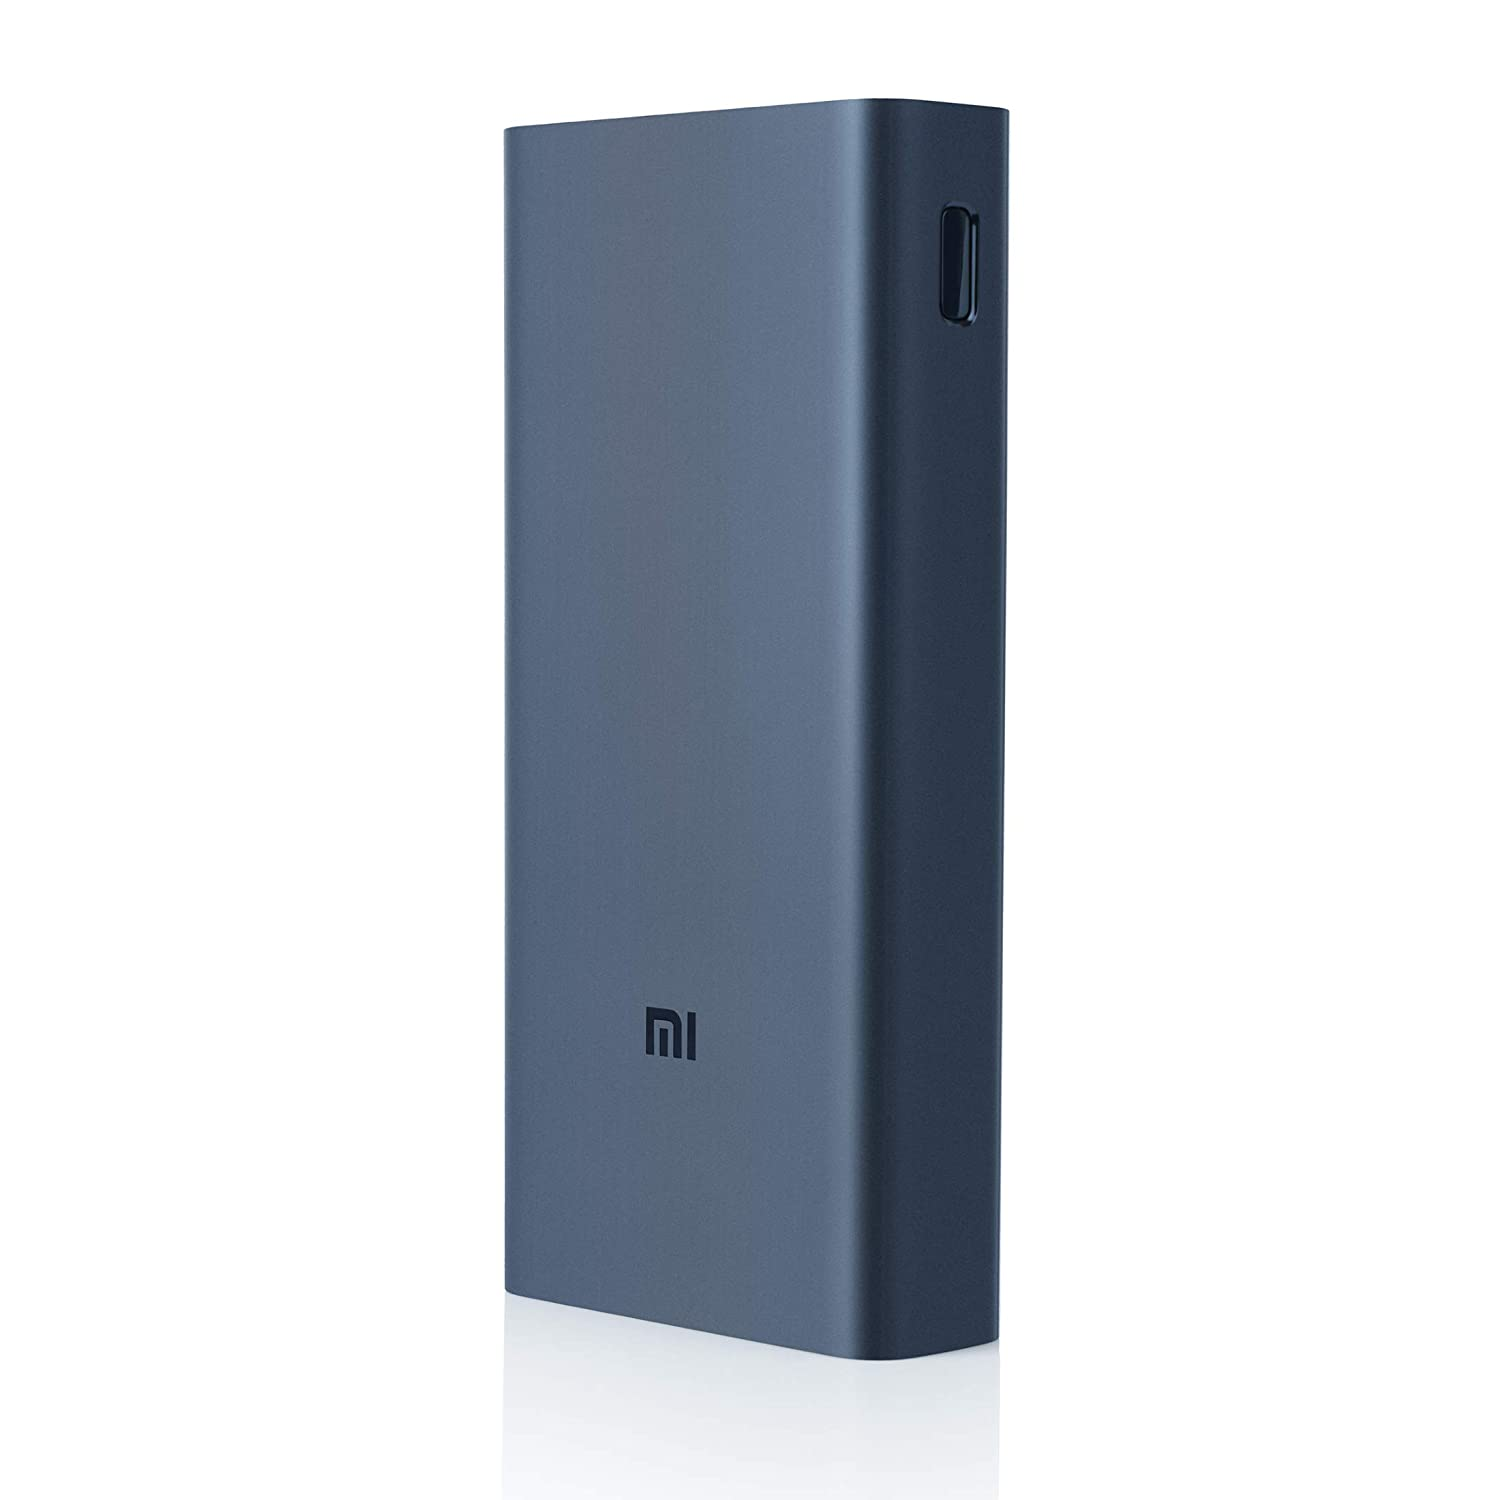 Mi Power Bank 3i 20000mAh (Sandstone Black) Triple Output and Dual Input Port | 18W Fast Charging | Power Delivery